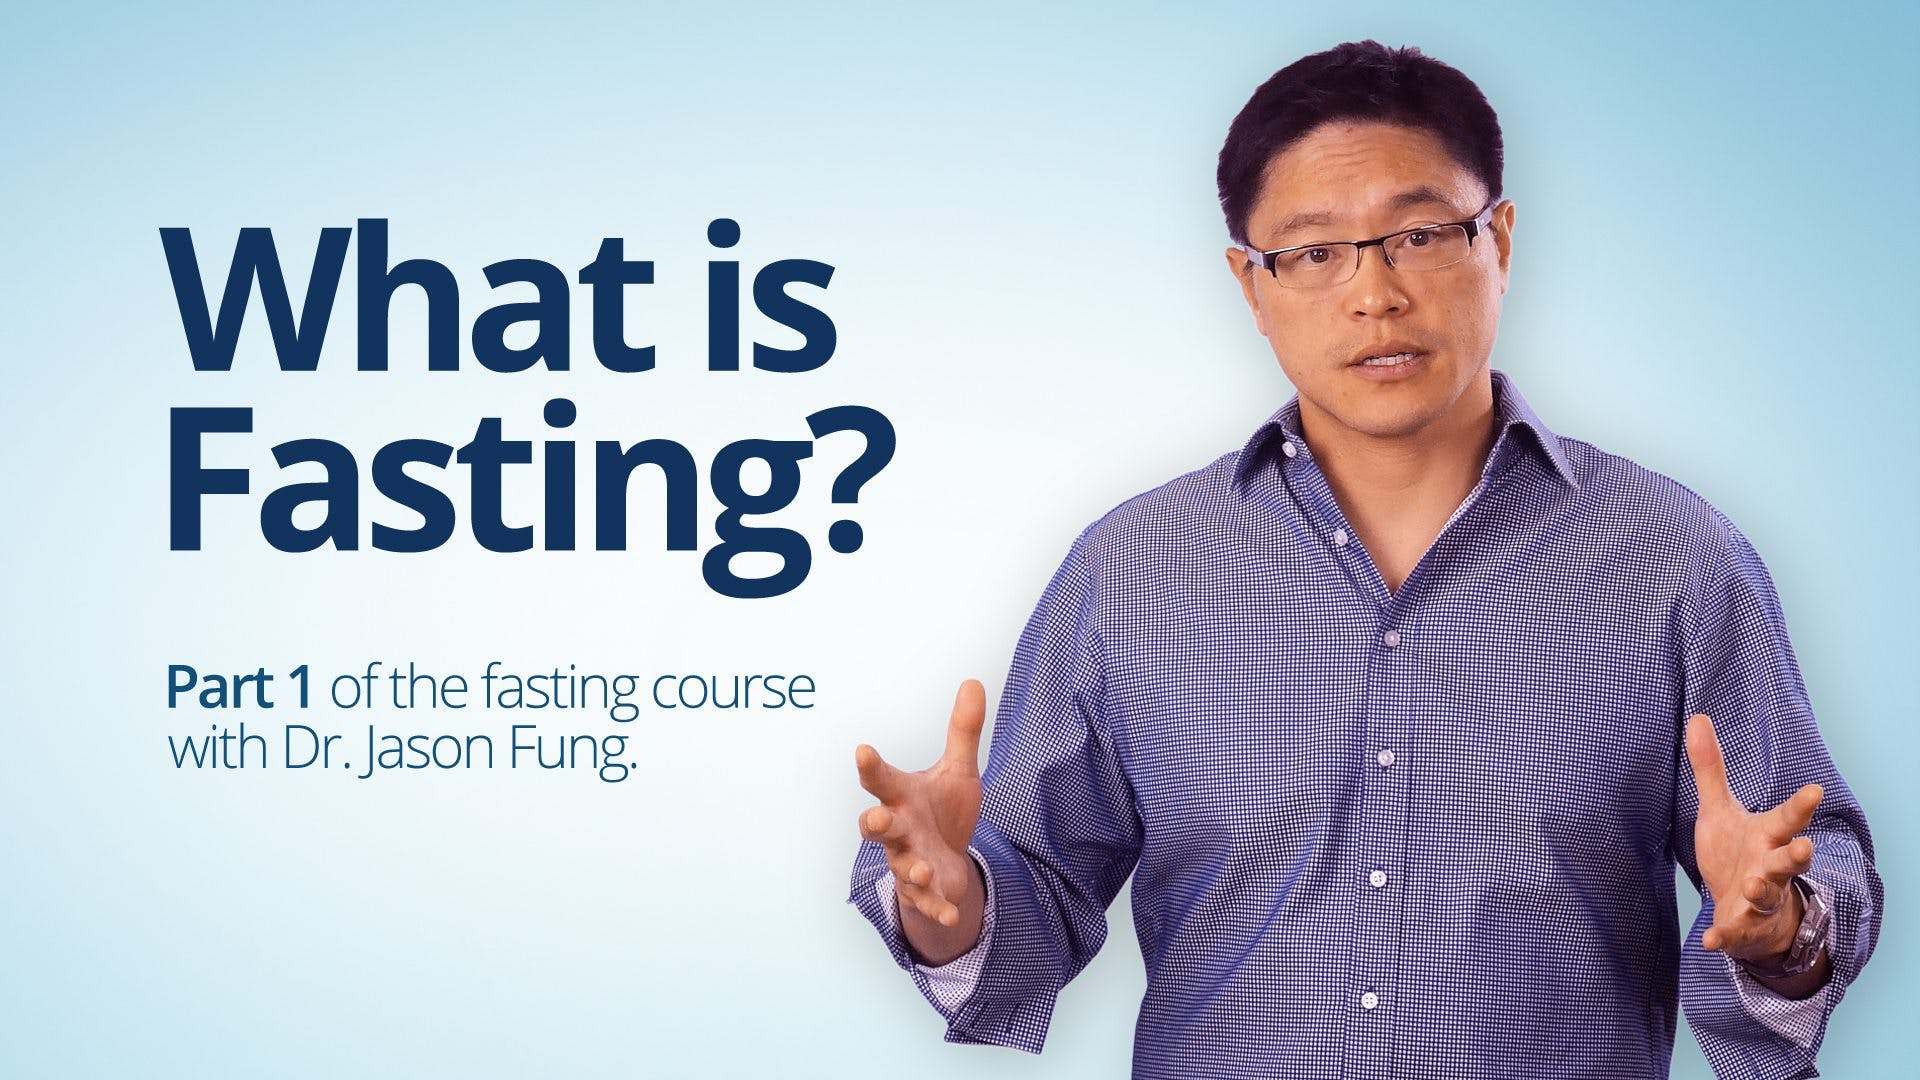 What is Fasting? – Dr. Jason Fung